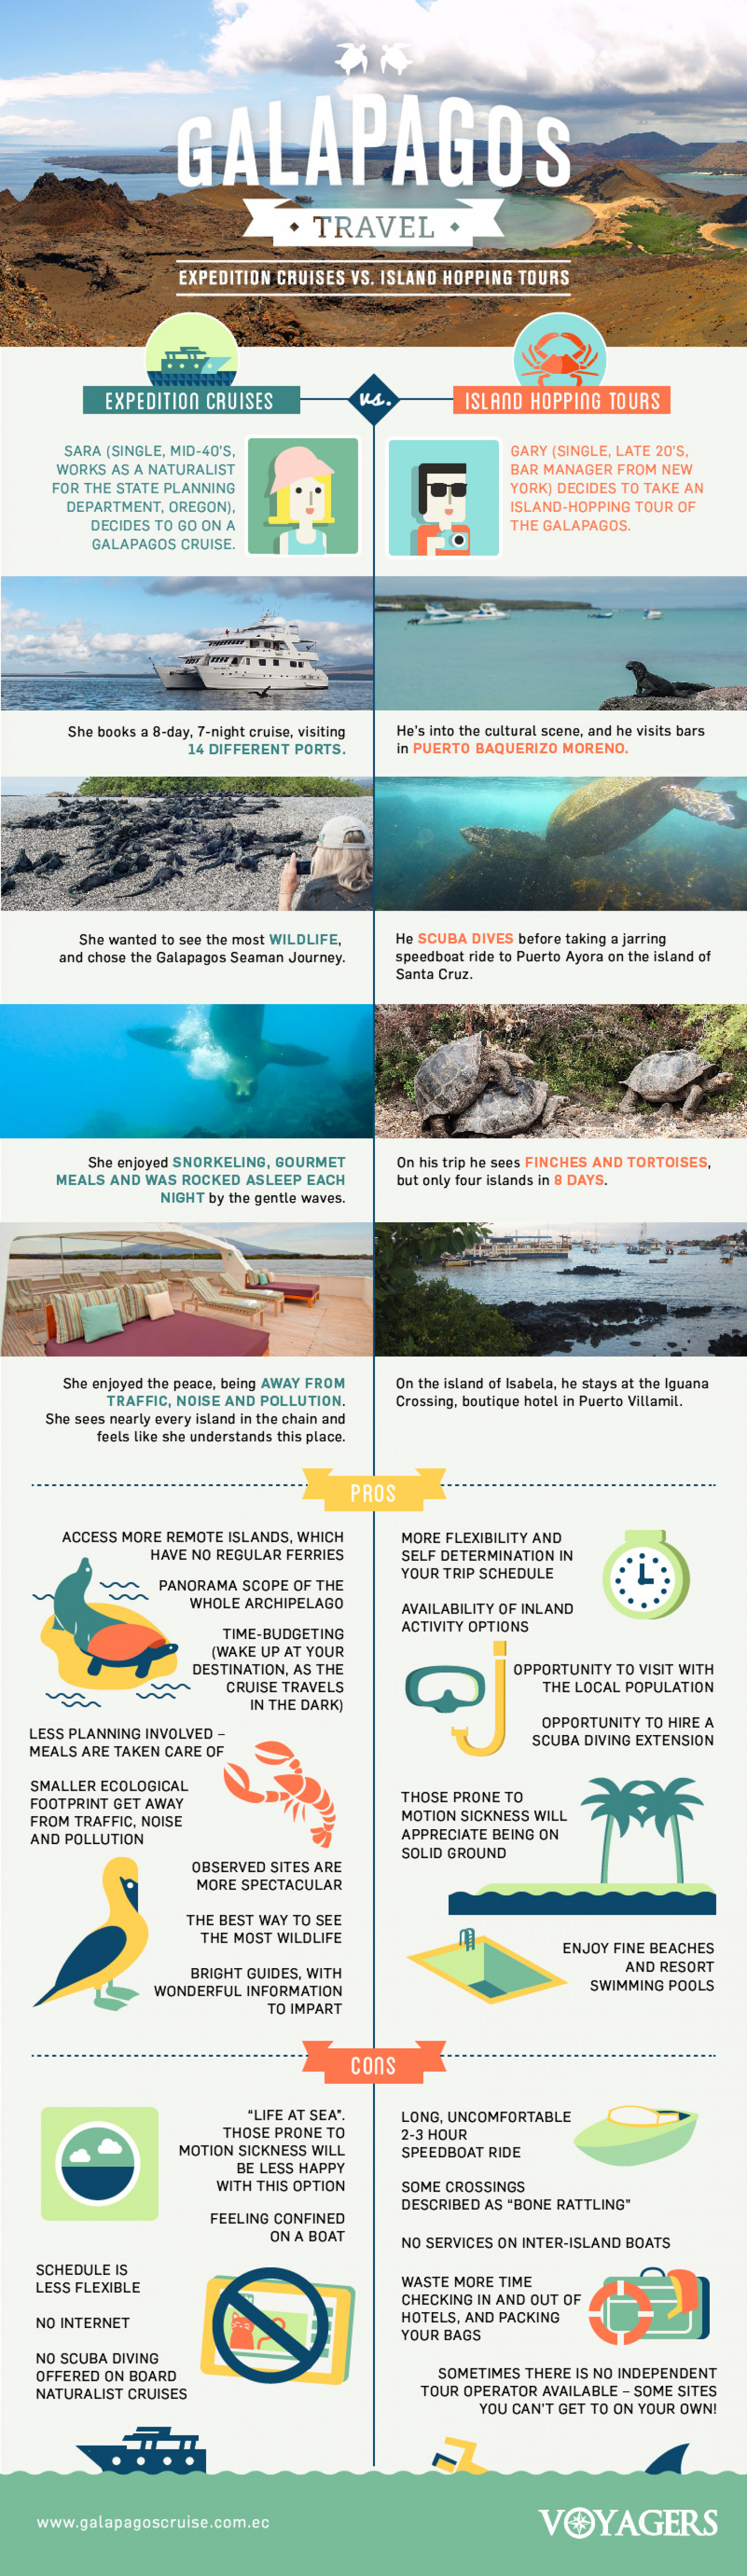 Galapagos Cruise or Island hopping tour Infographic